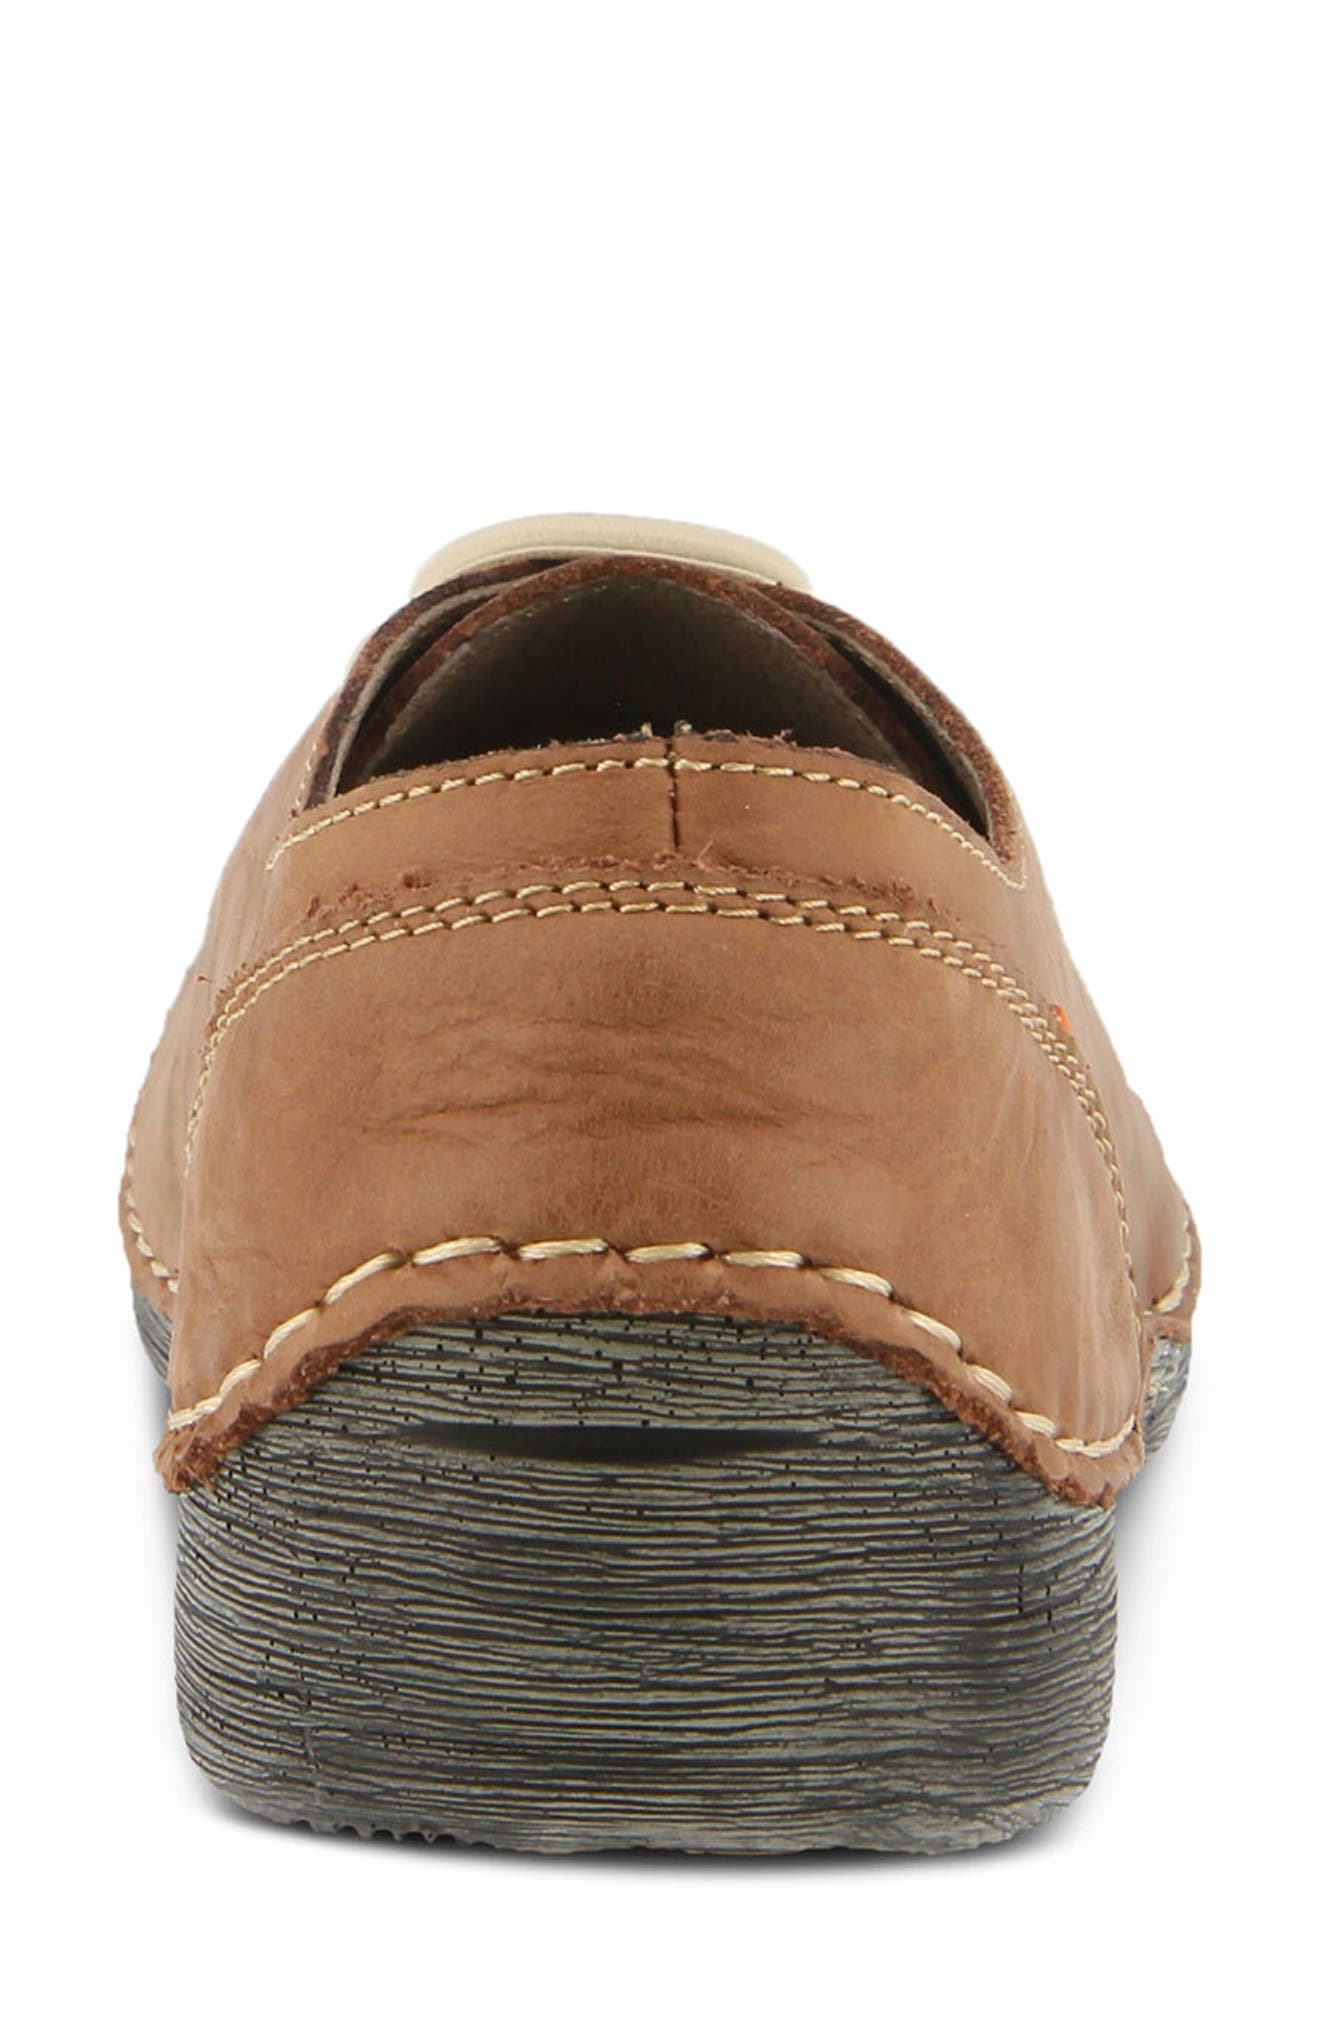 Carhop Sneaker,                             Alternate thumbnail 6, color,                             BROWN LEATHER